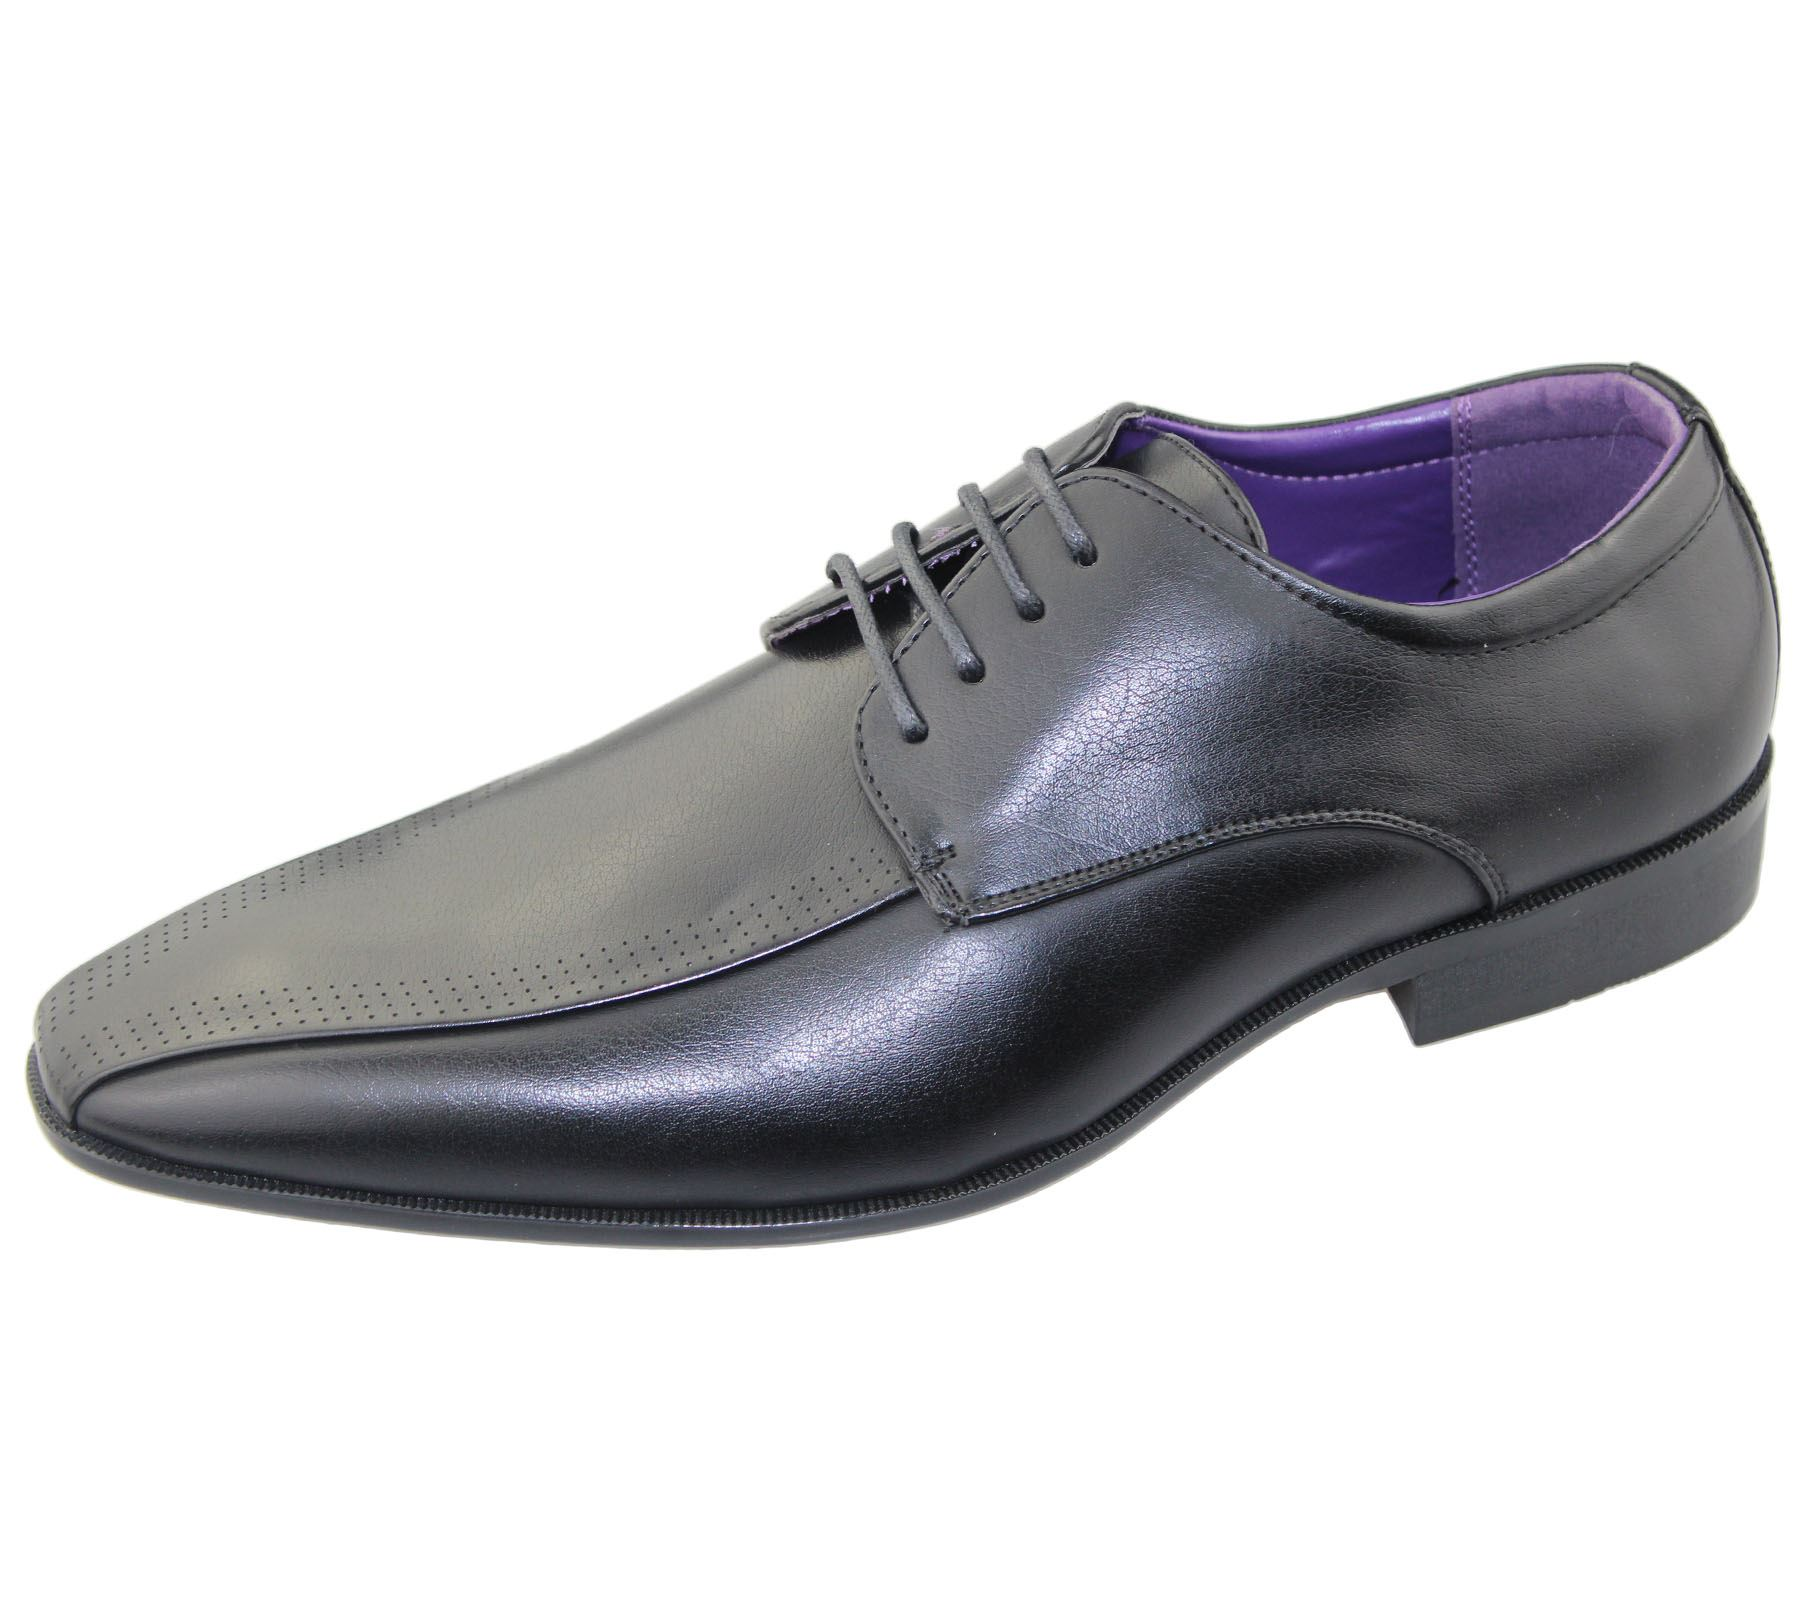 Mens Office Brogues Shoes Wedding Casual Smart Dress Formal Shoes New Size